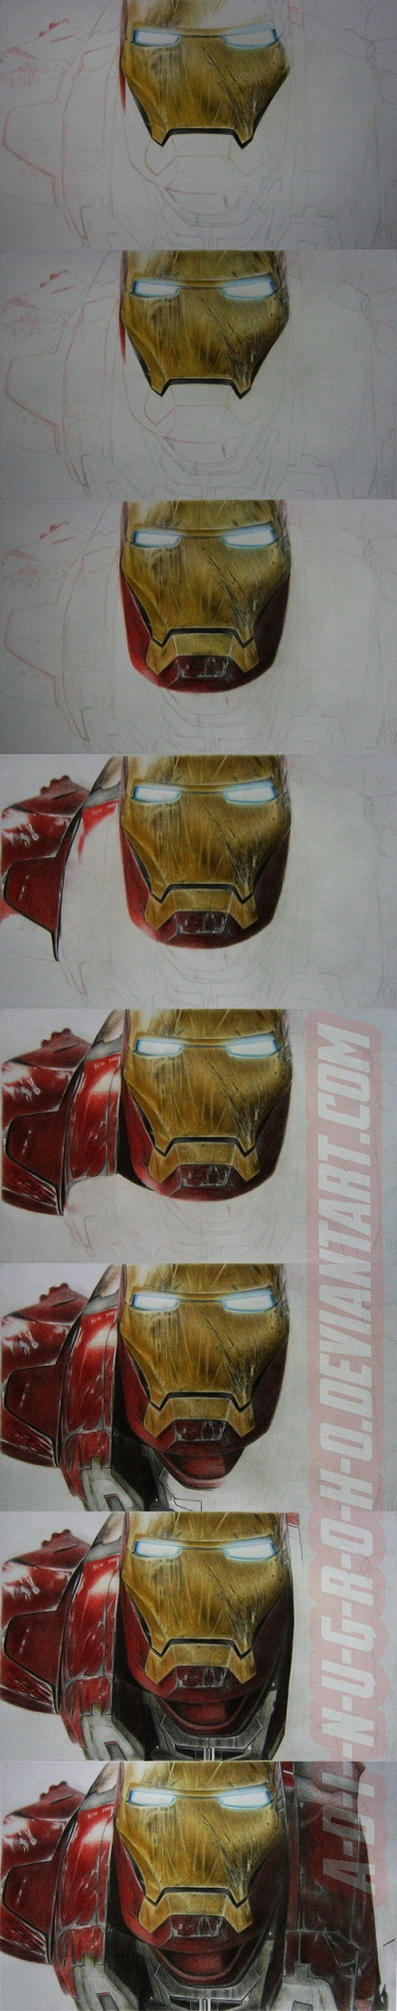 iron man (WIP EDITION) by A-D-I--N-U-G-R-O-H-O